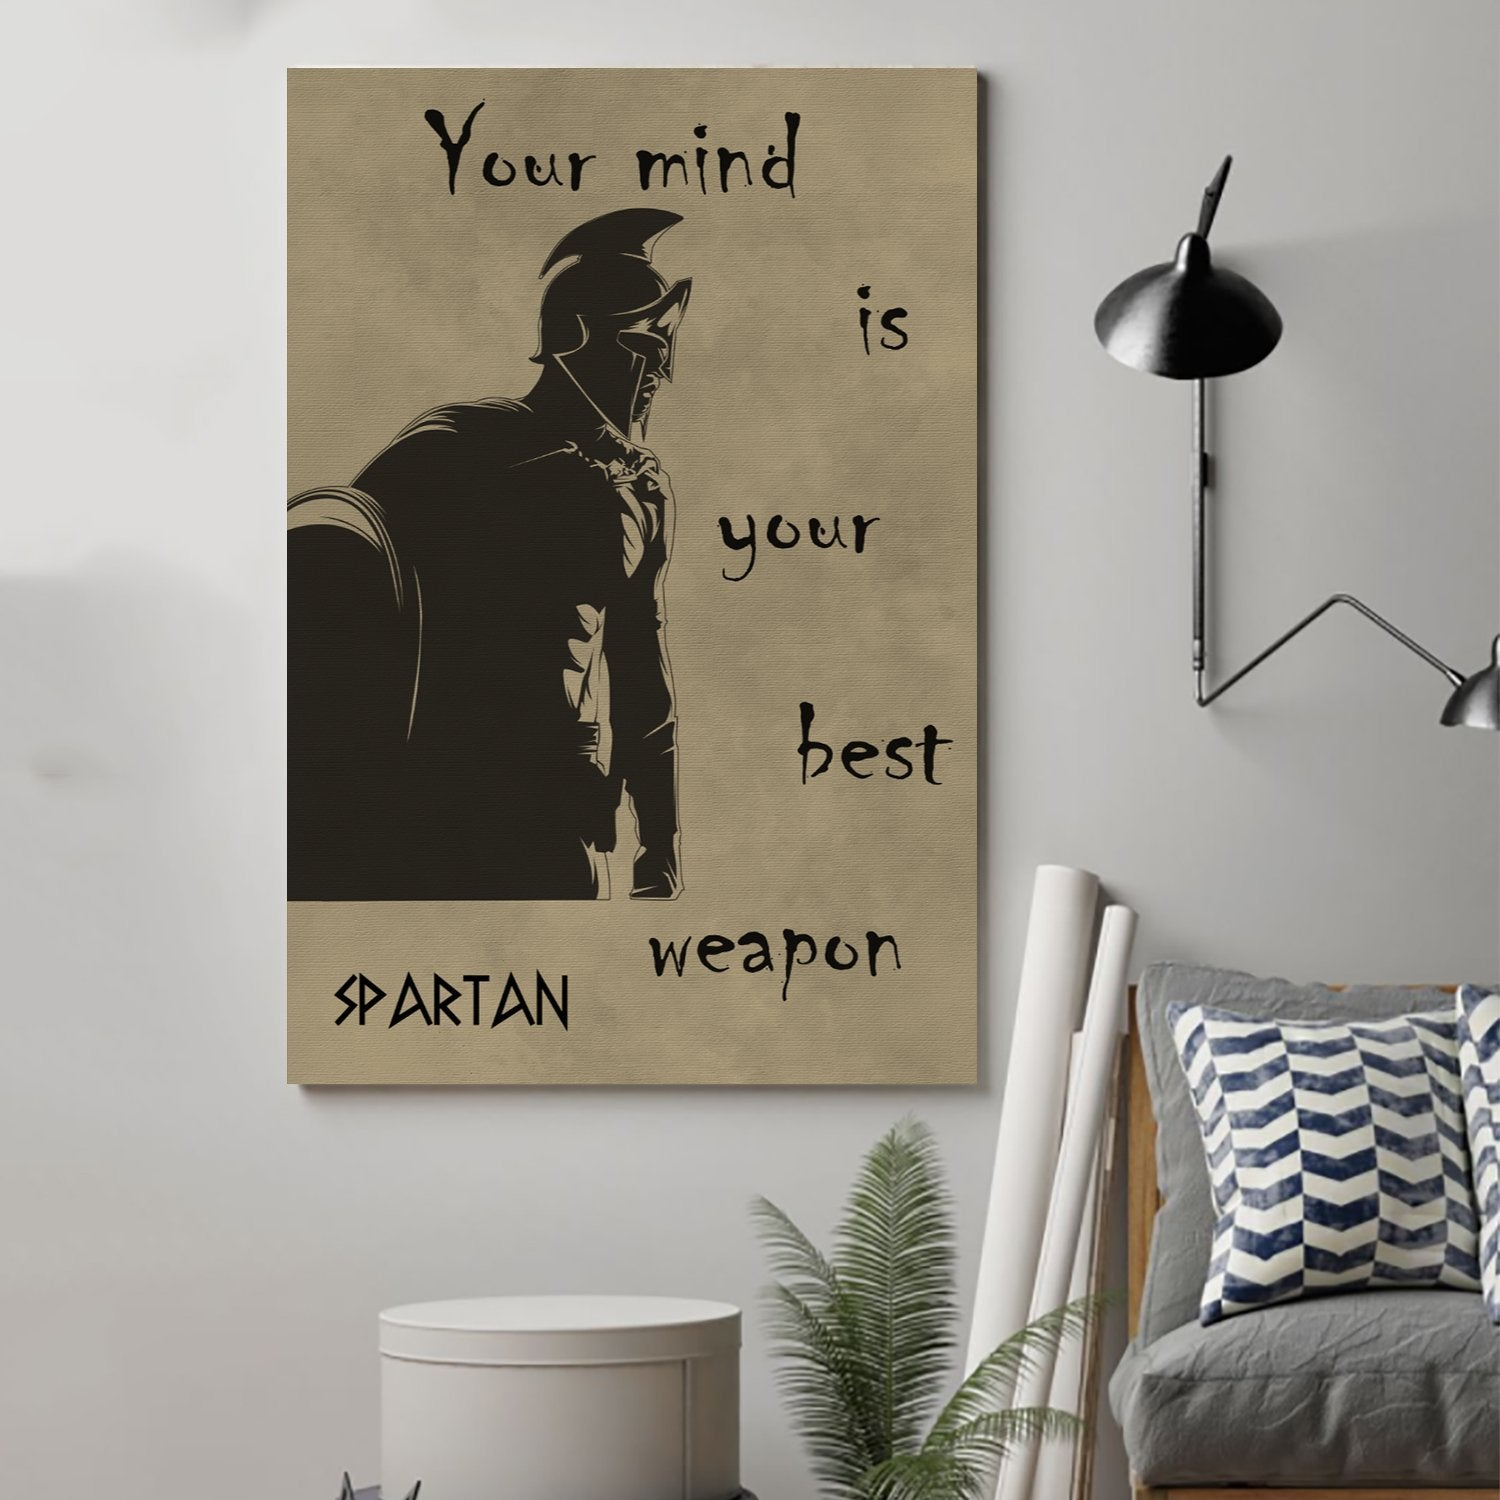 (cv78) spartan Poster - your mind is your best weapon